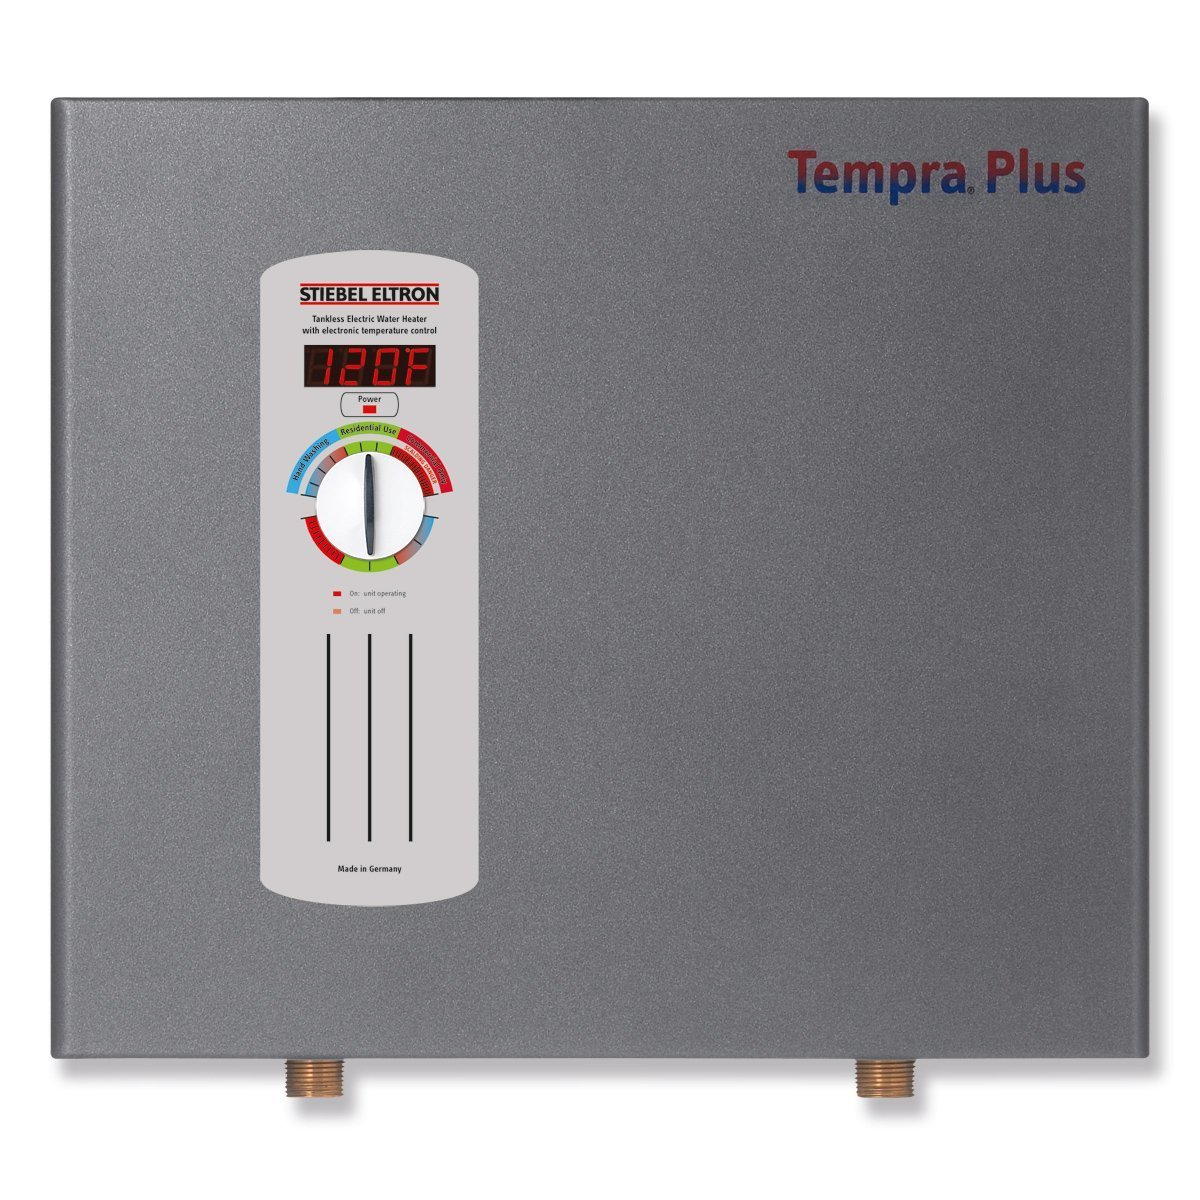 1. Stiebel Eltron Tempra Plus 29 kW, tankless electric water heater with Self-Modulating Power Technology & Advanced Flow Control